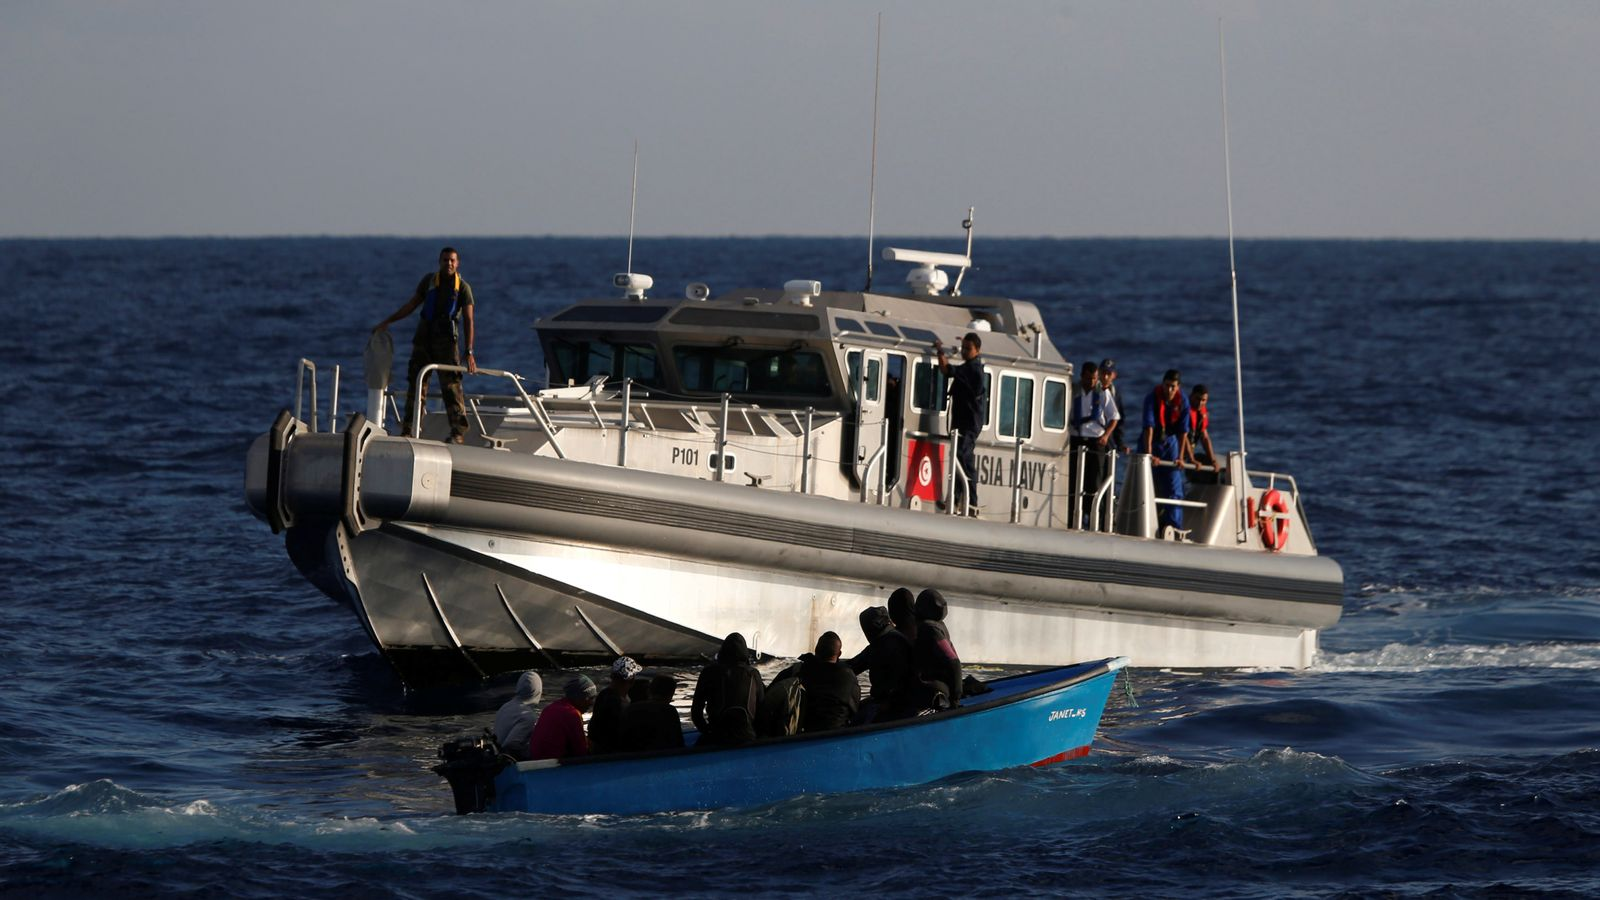 Thirty-five migrants killed after boat sinks